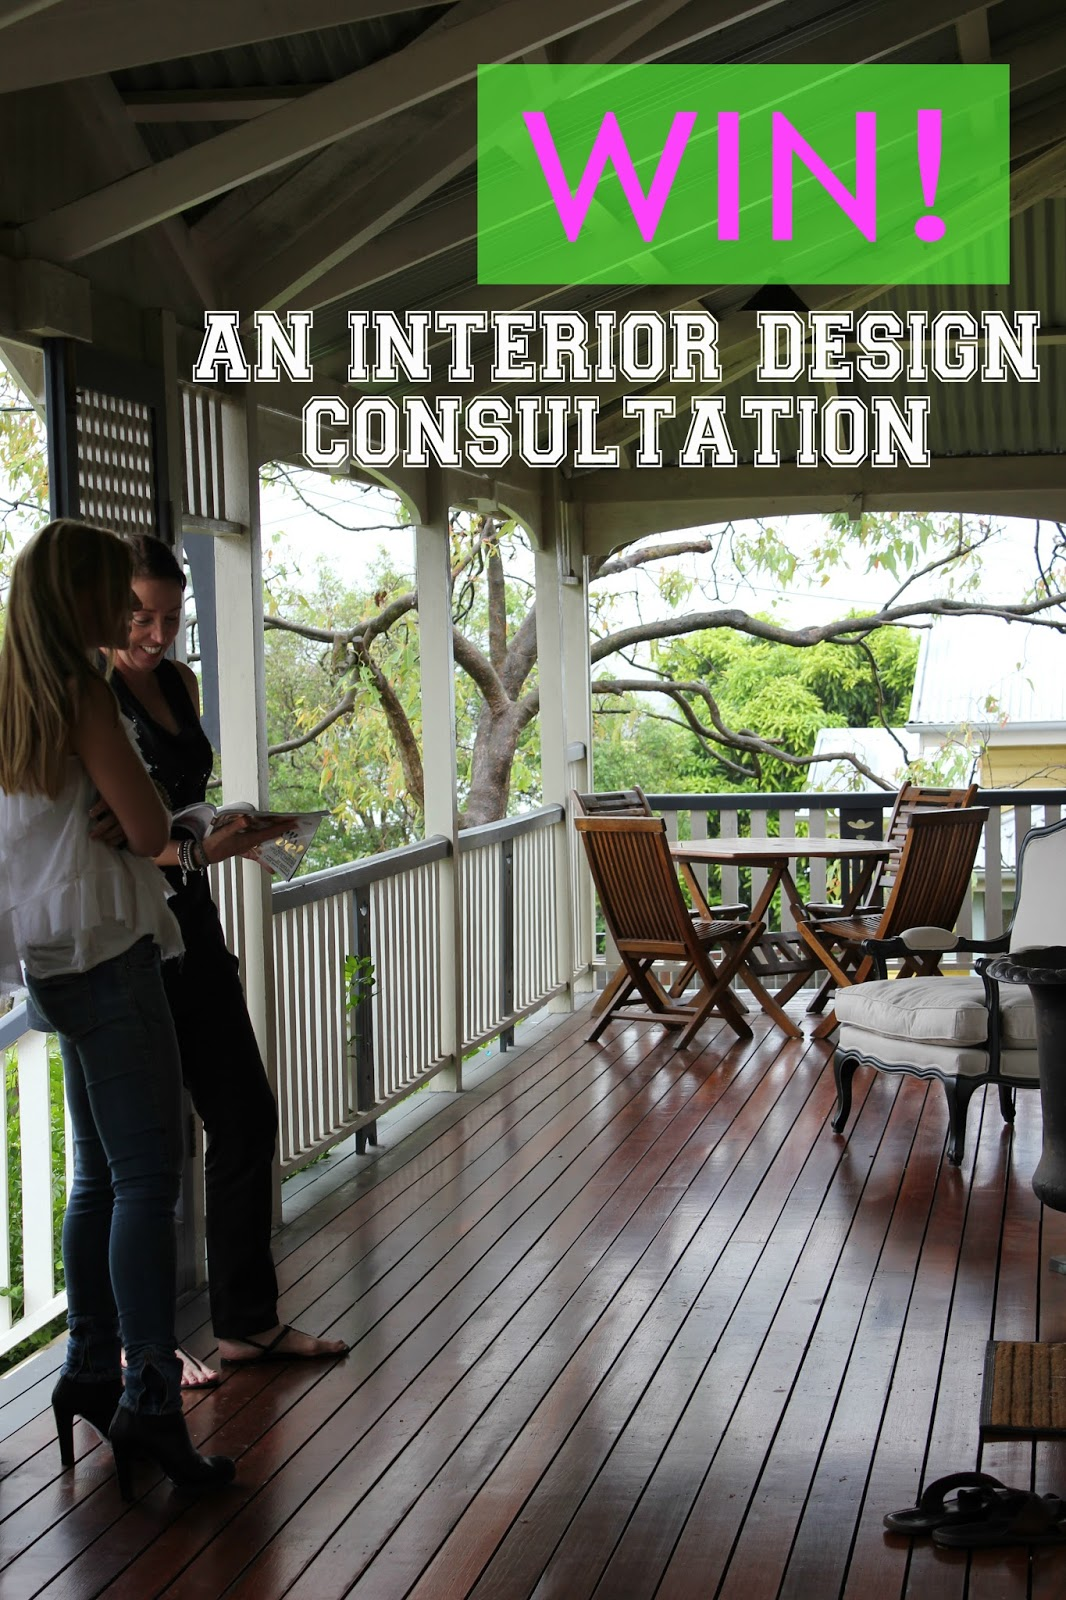 Charcoal interiors style in the city nov 26 2015 for Interior design consultation